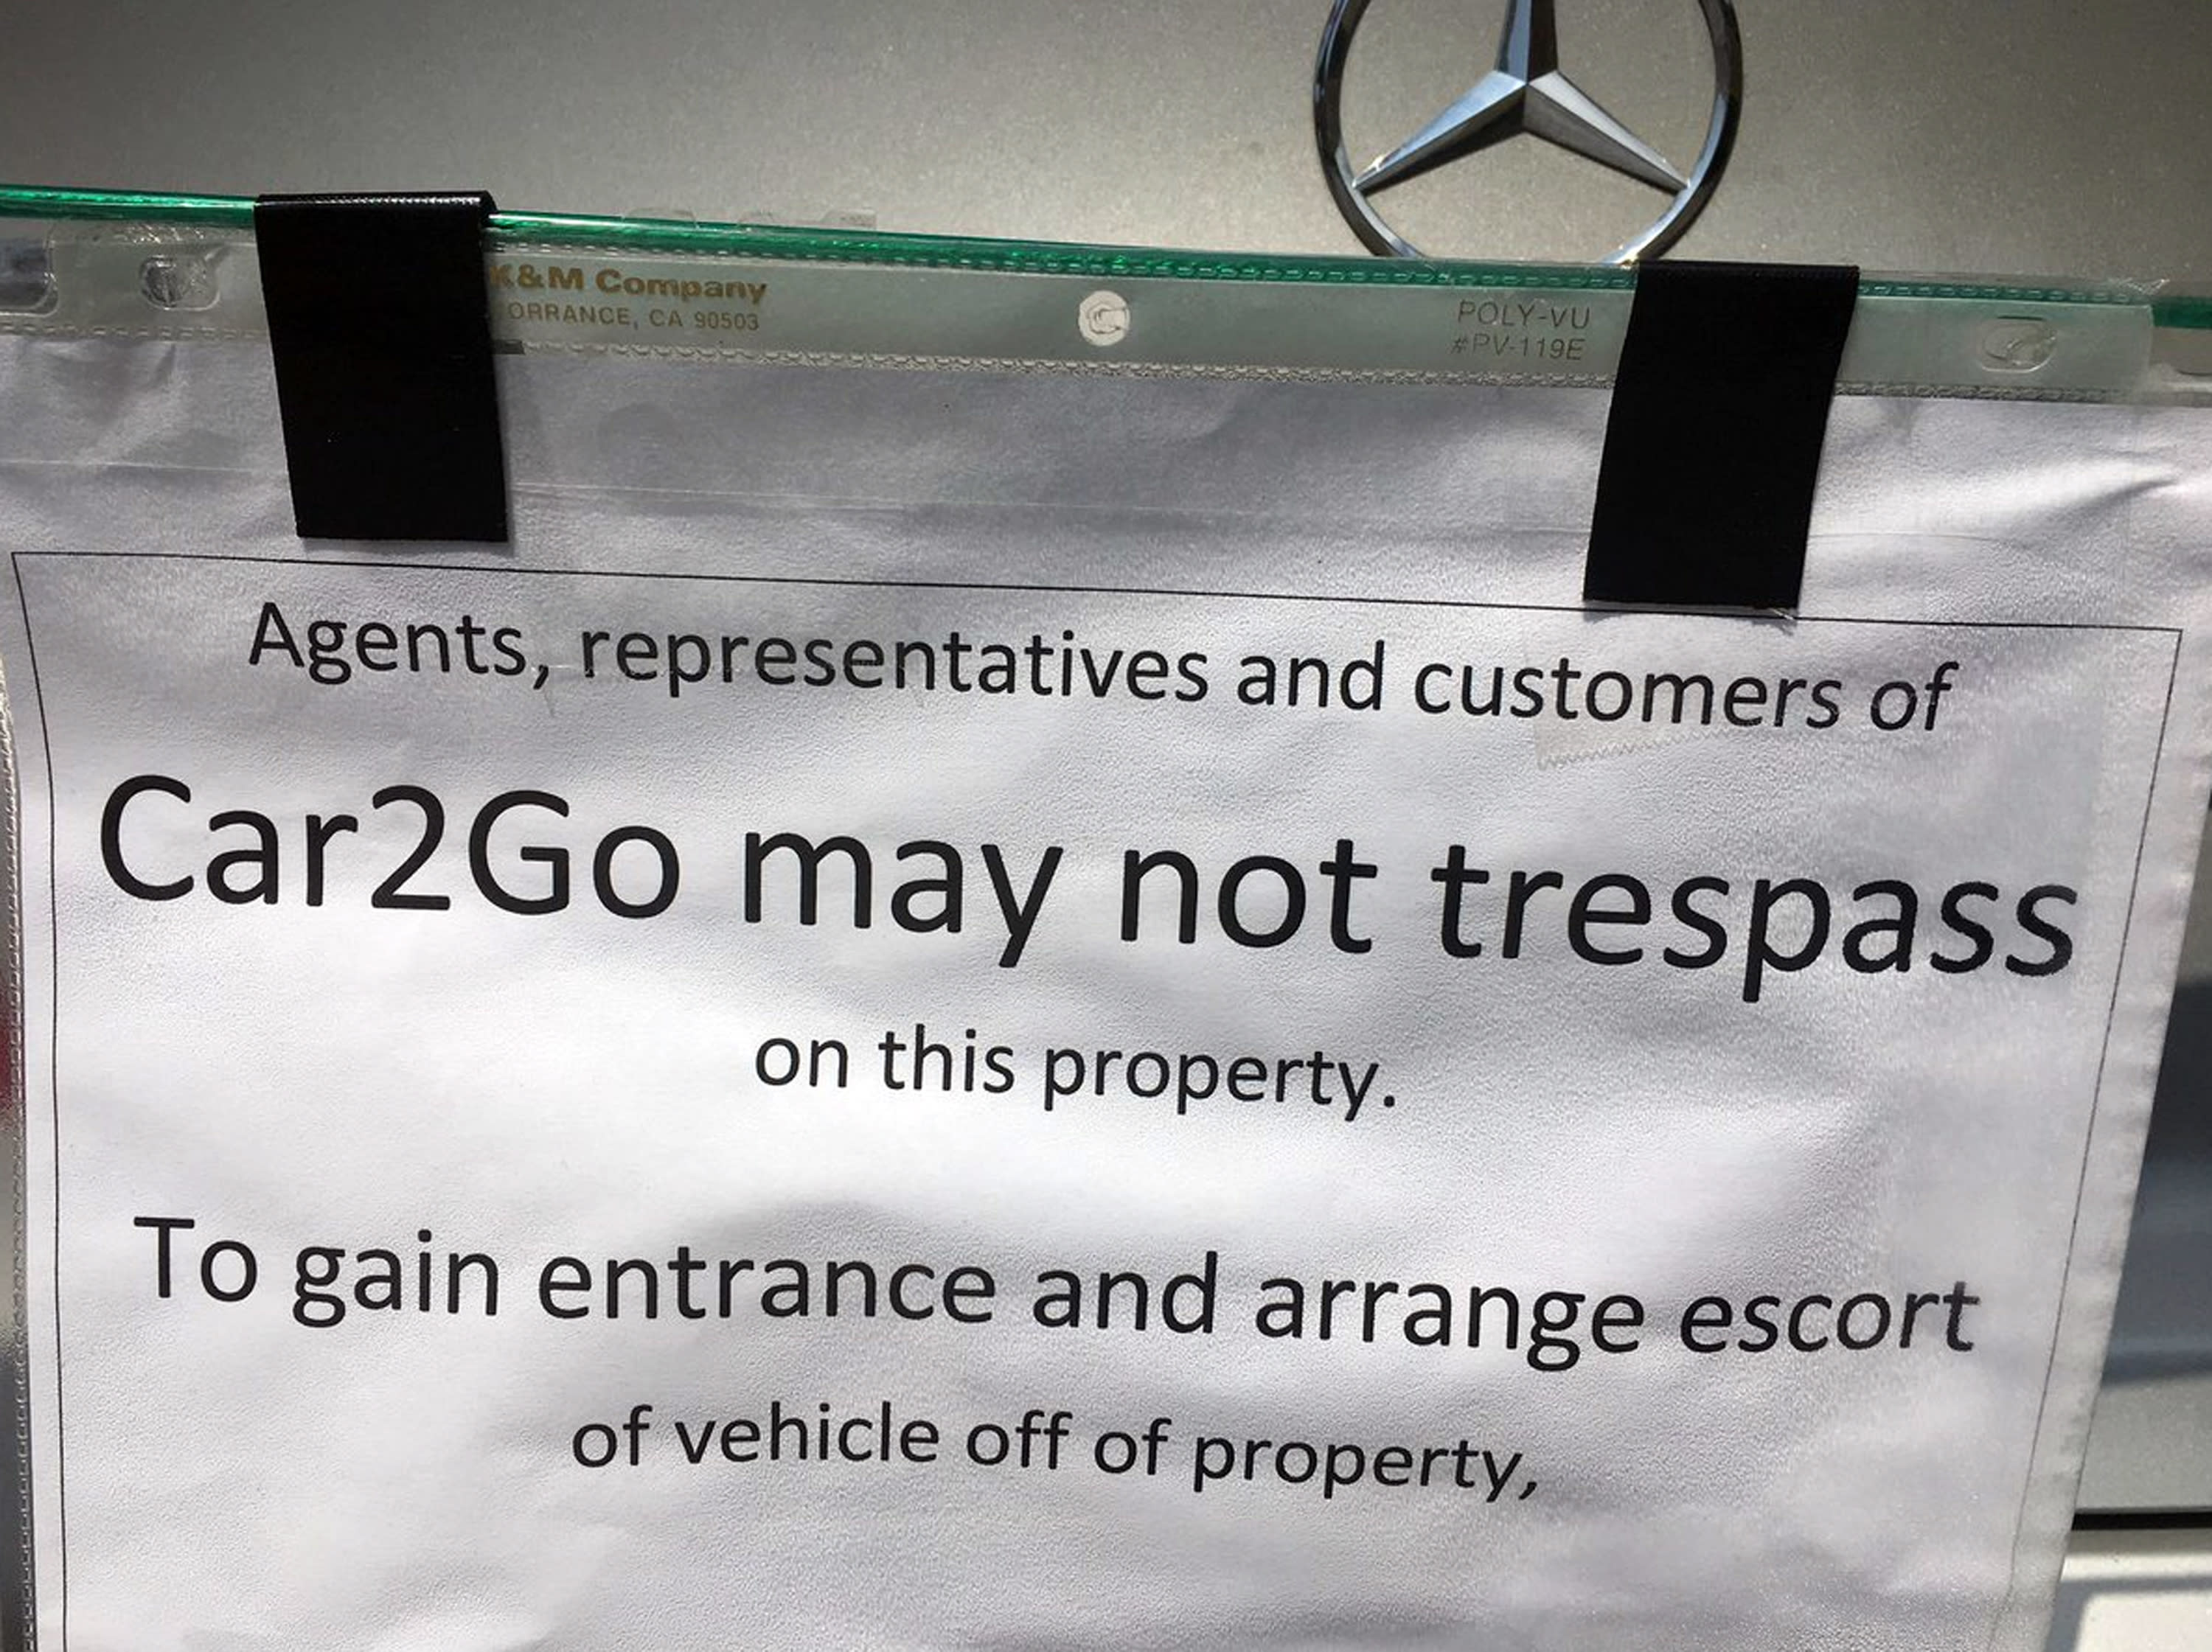 This undated photo provided by KOMO News shows a notice attached to a car-share vehicle parked at a Seattle duplex. Dan Smith took exception to the car2go Mercedes that has been parked there since May 17, 2019. He says he doesn't know who parked the car there, but it wasn't one of the tenants. By the next day he had erected the barricade, preventing other customers from using the vehicle. He wants Share Now, which operates car2go, to pay storage fees. The company says it won't tolerate having its vehicle held for ransom. (KOMO News via AP)